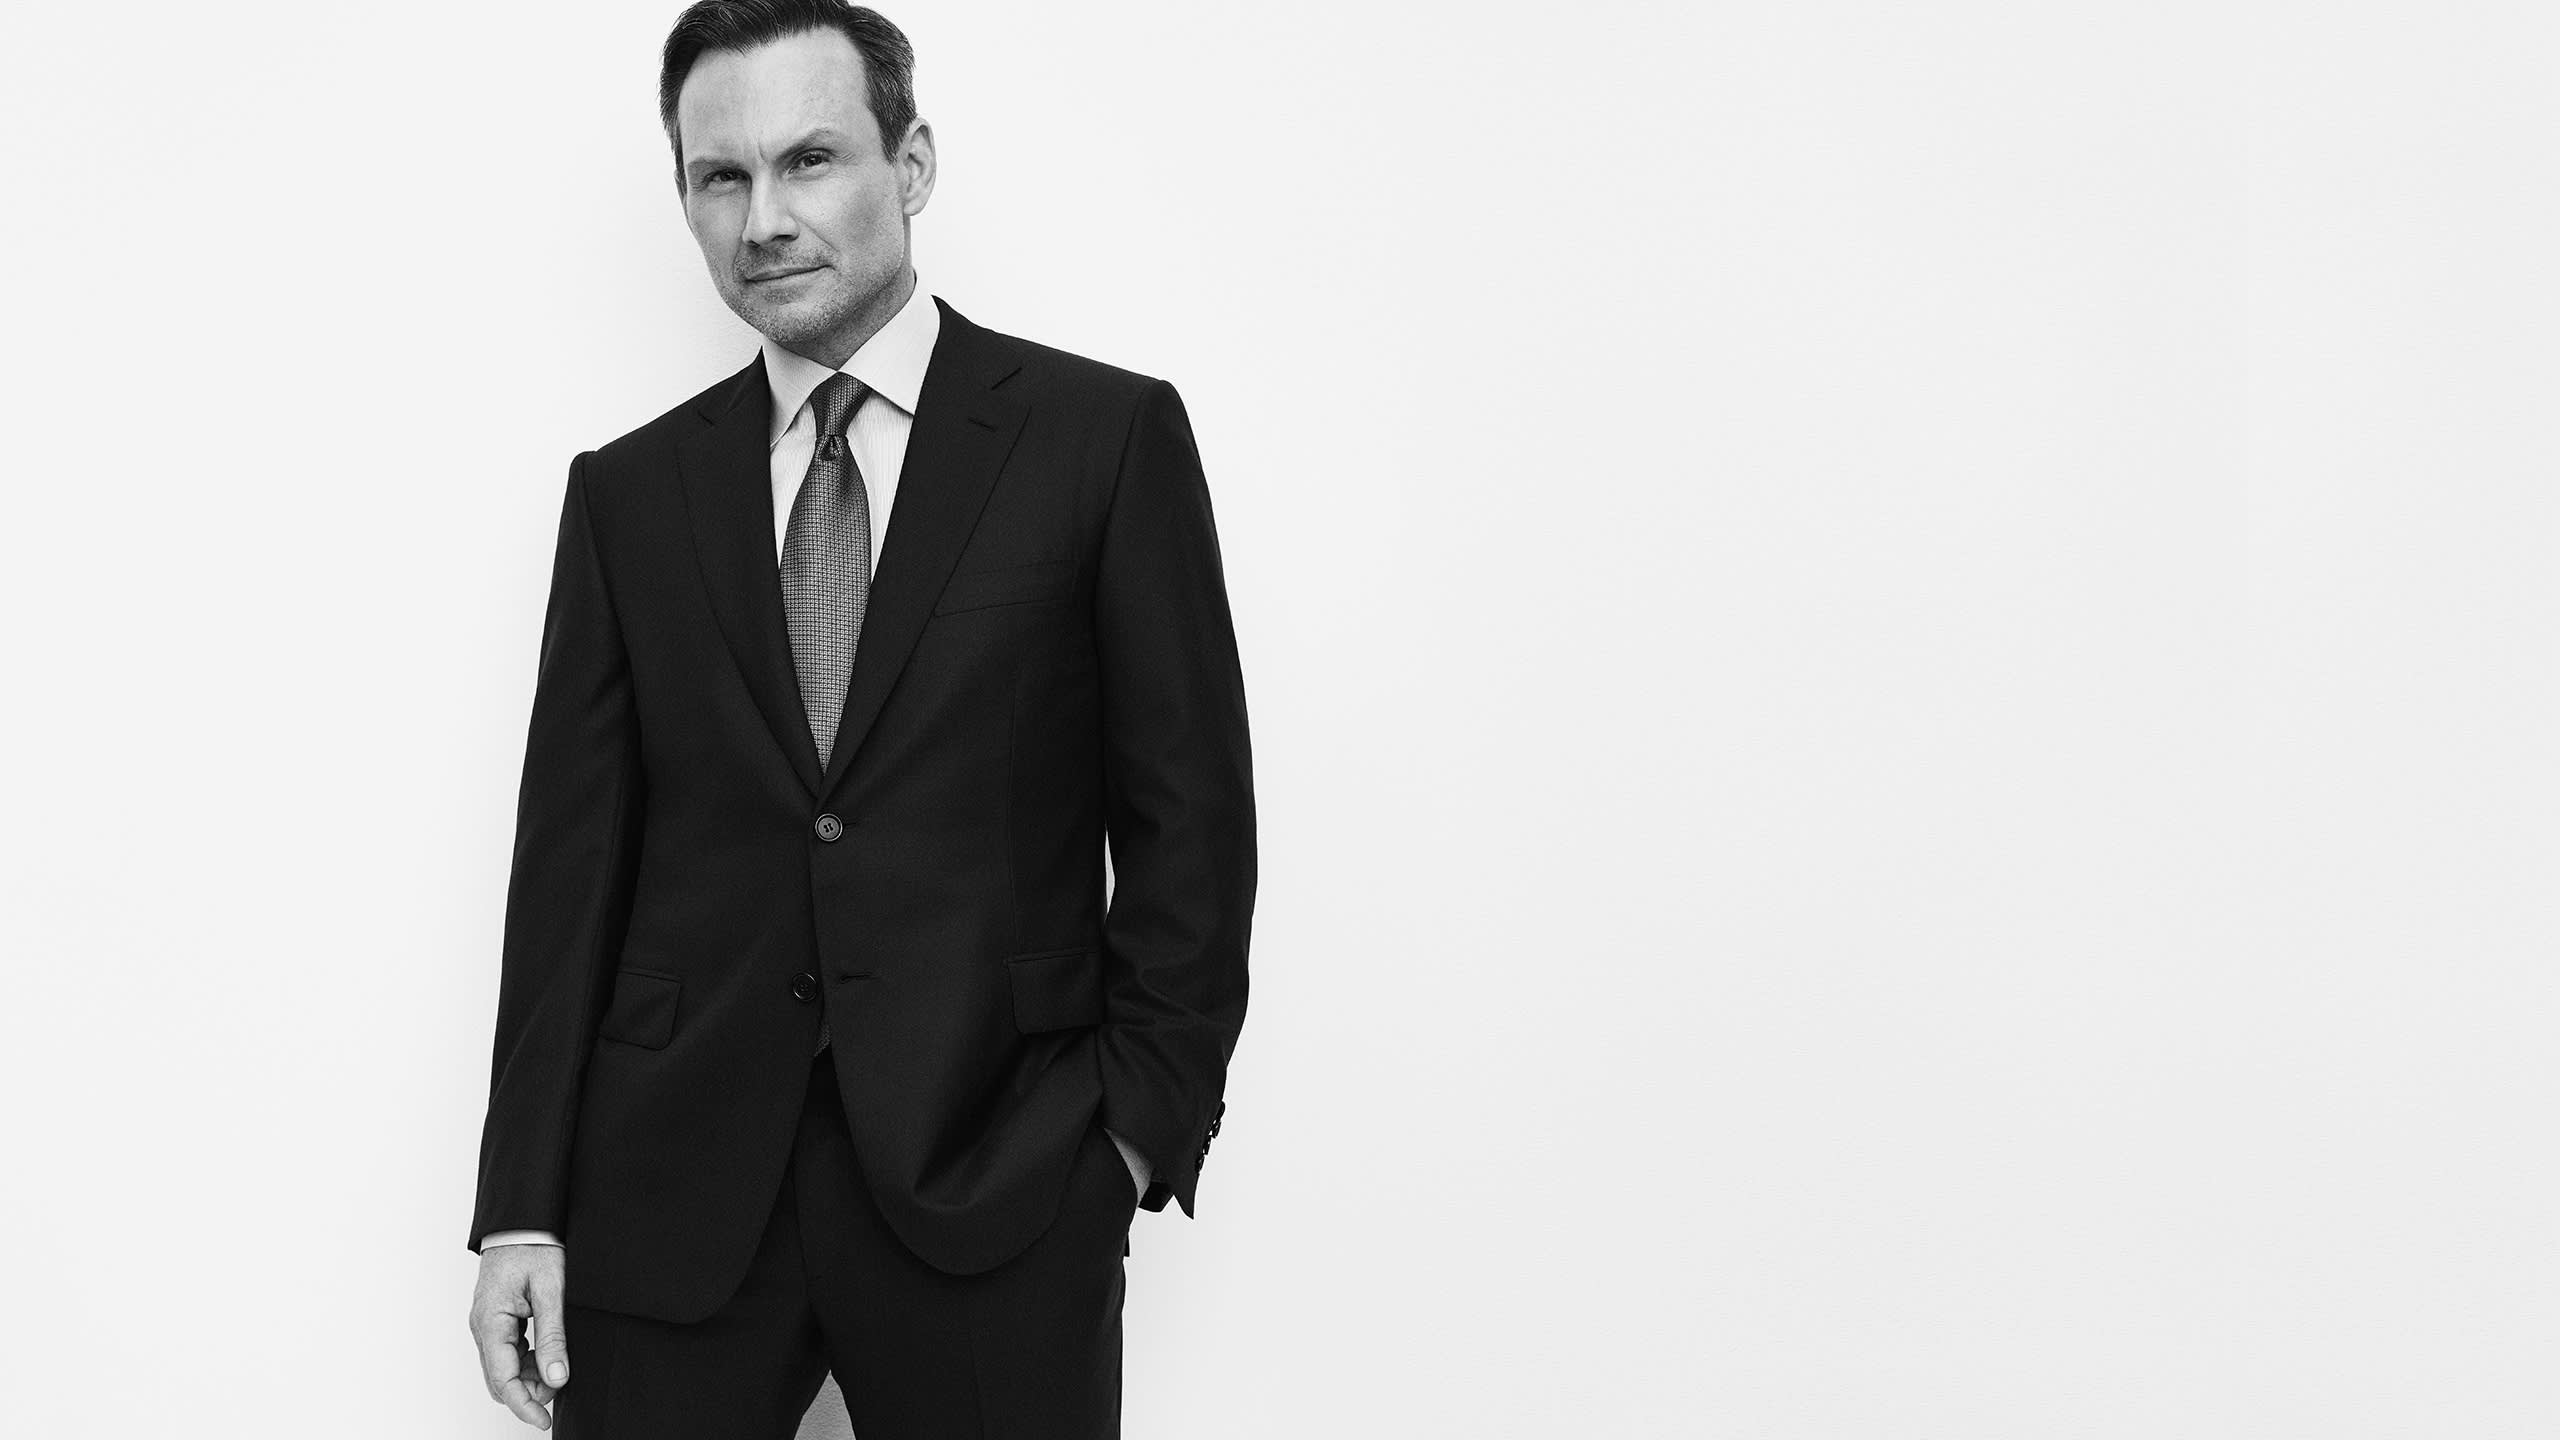 Christian Slater wearing a suit and shirt from the Brioni Essential collection